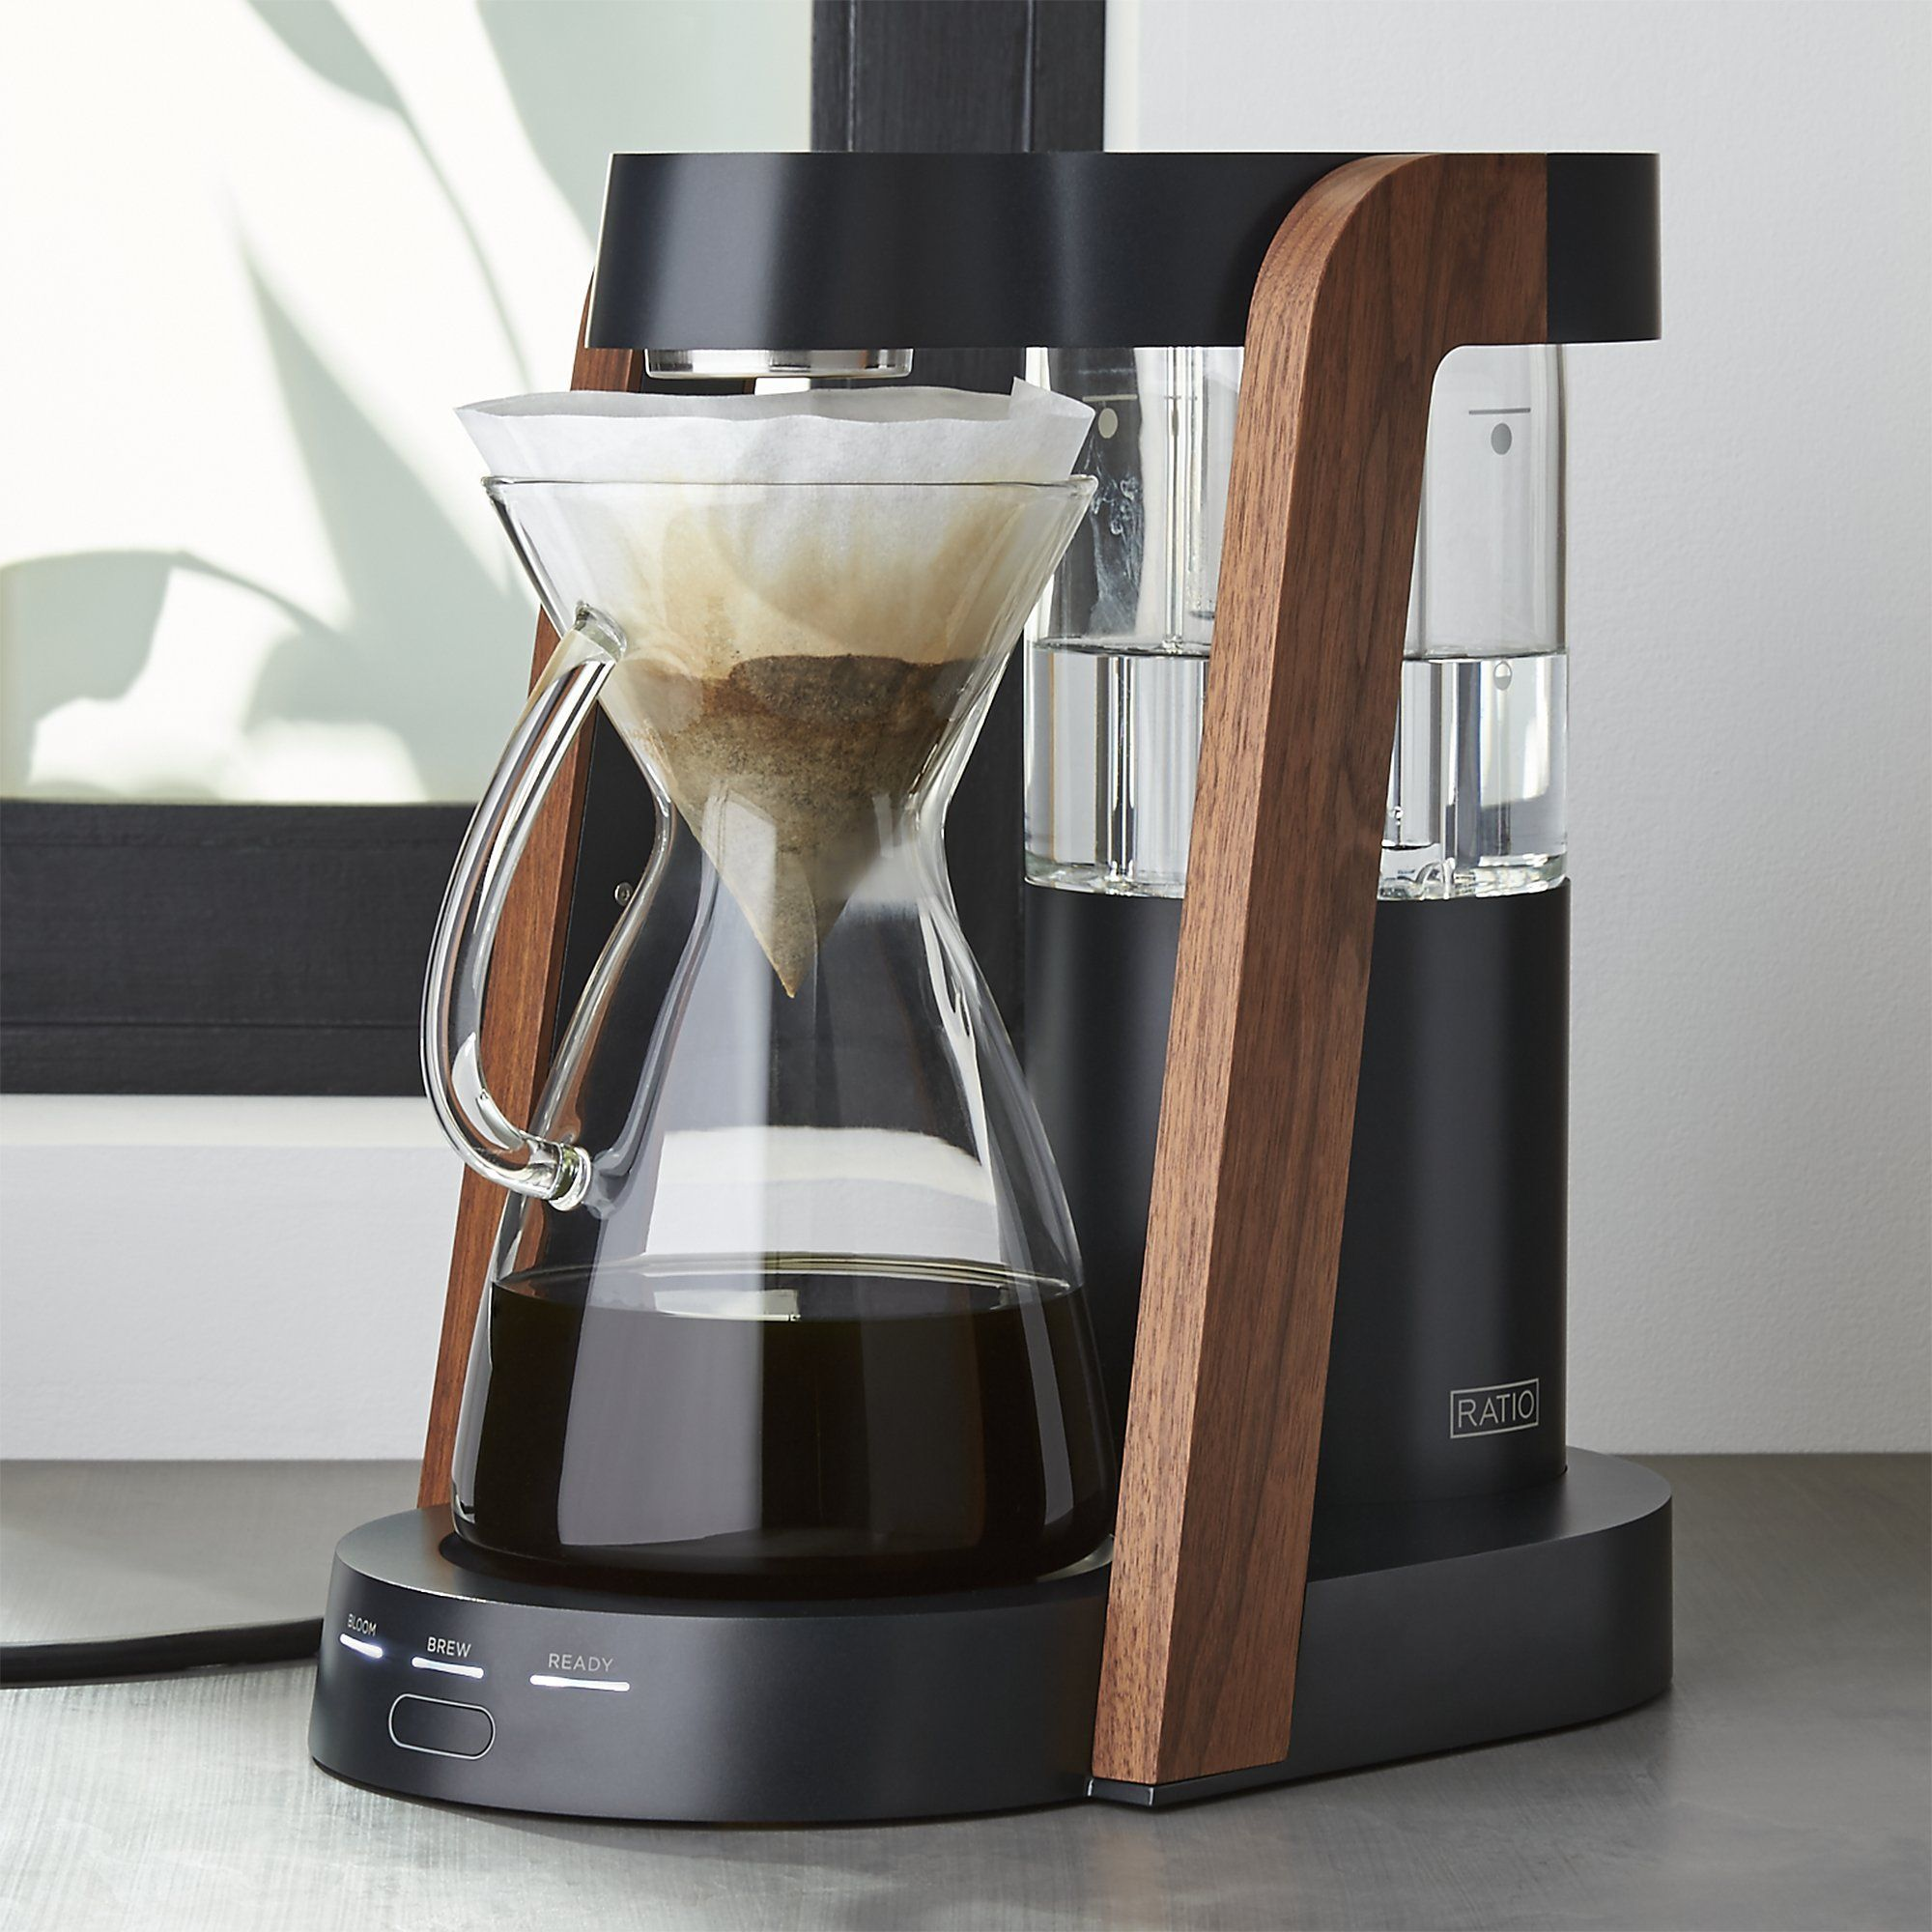 Ratio Eight Edition 8 Cup Coffee Maker Crate And Barrel Coffee Making Machine Coffee Maker Pour Over Coffee